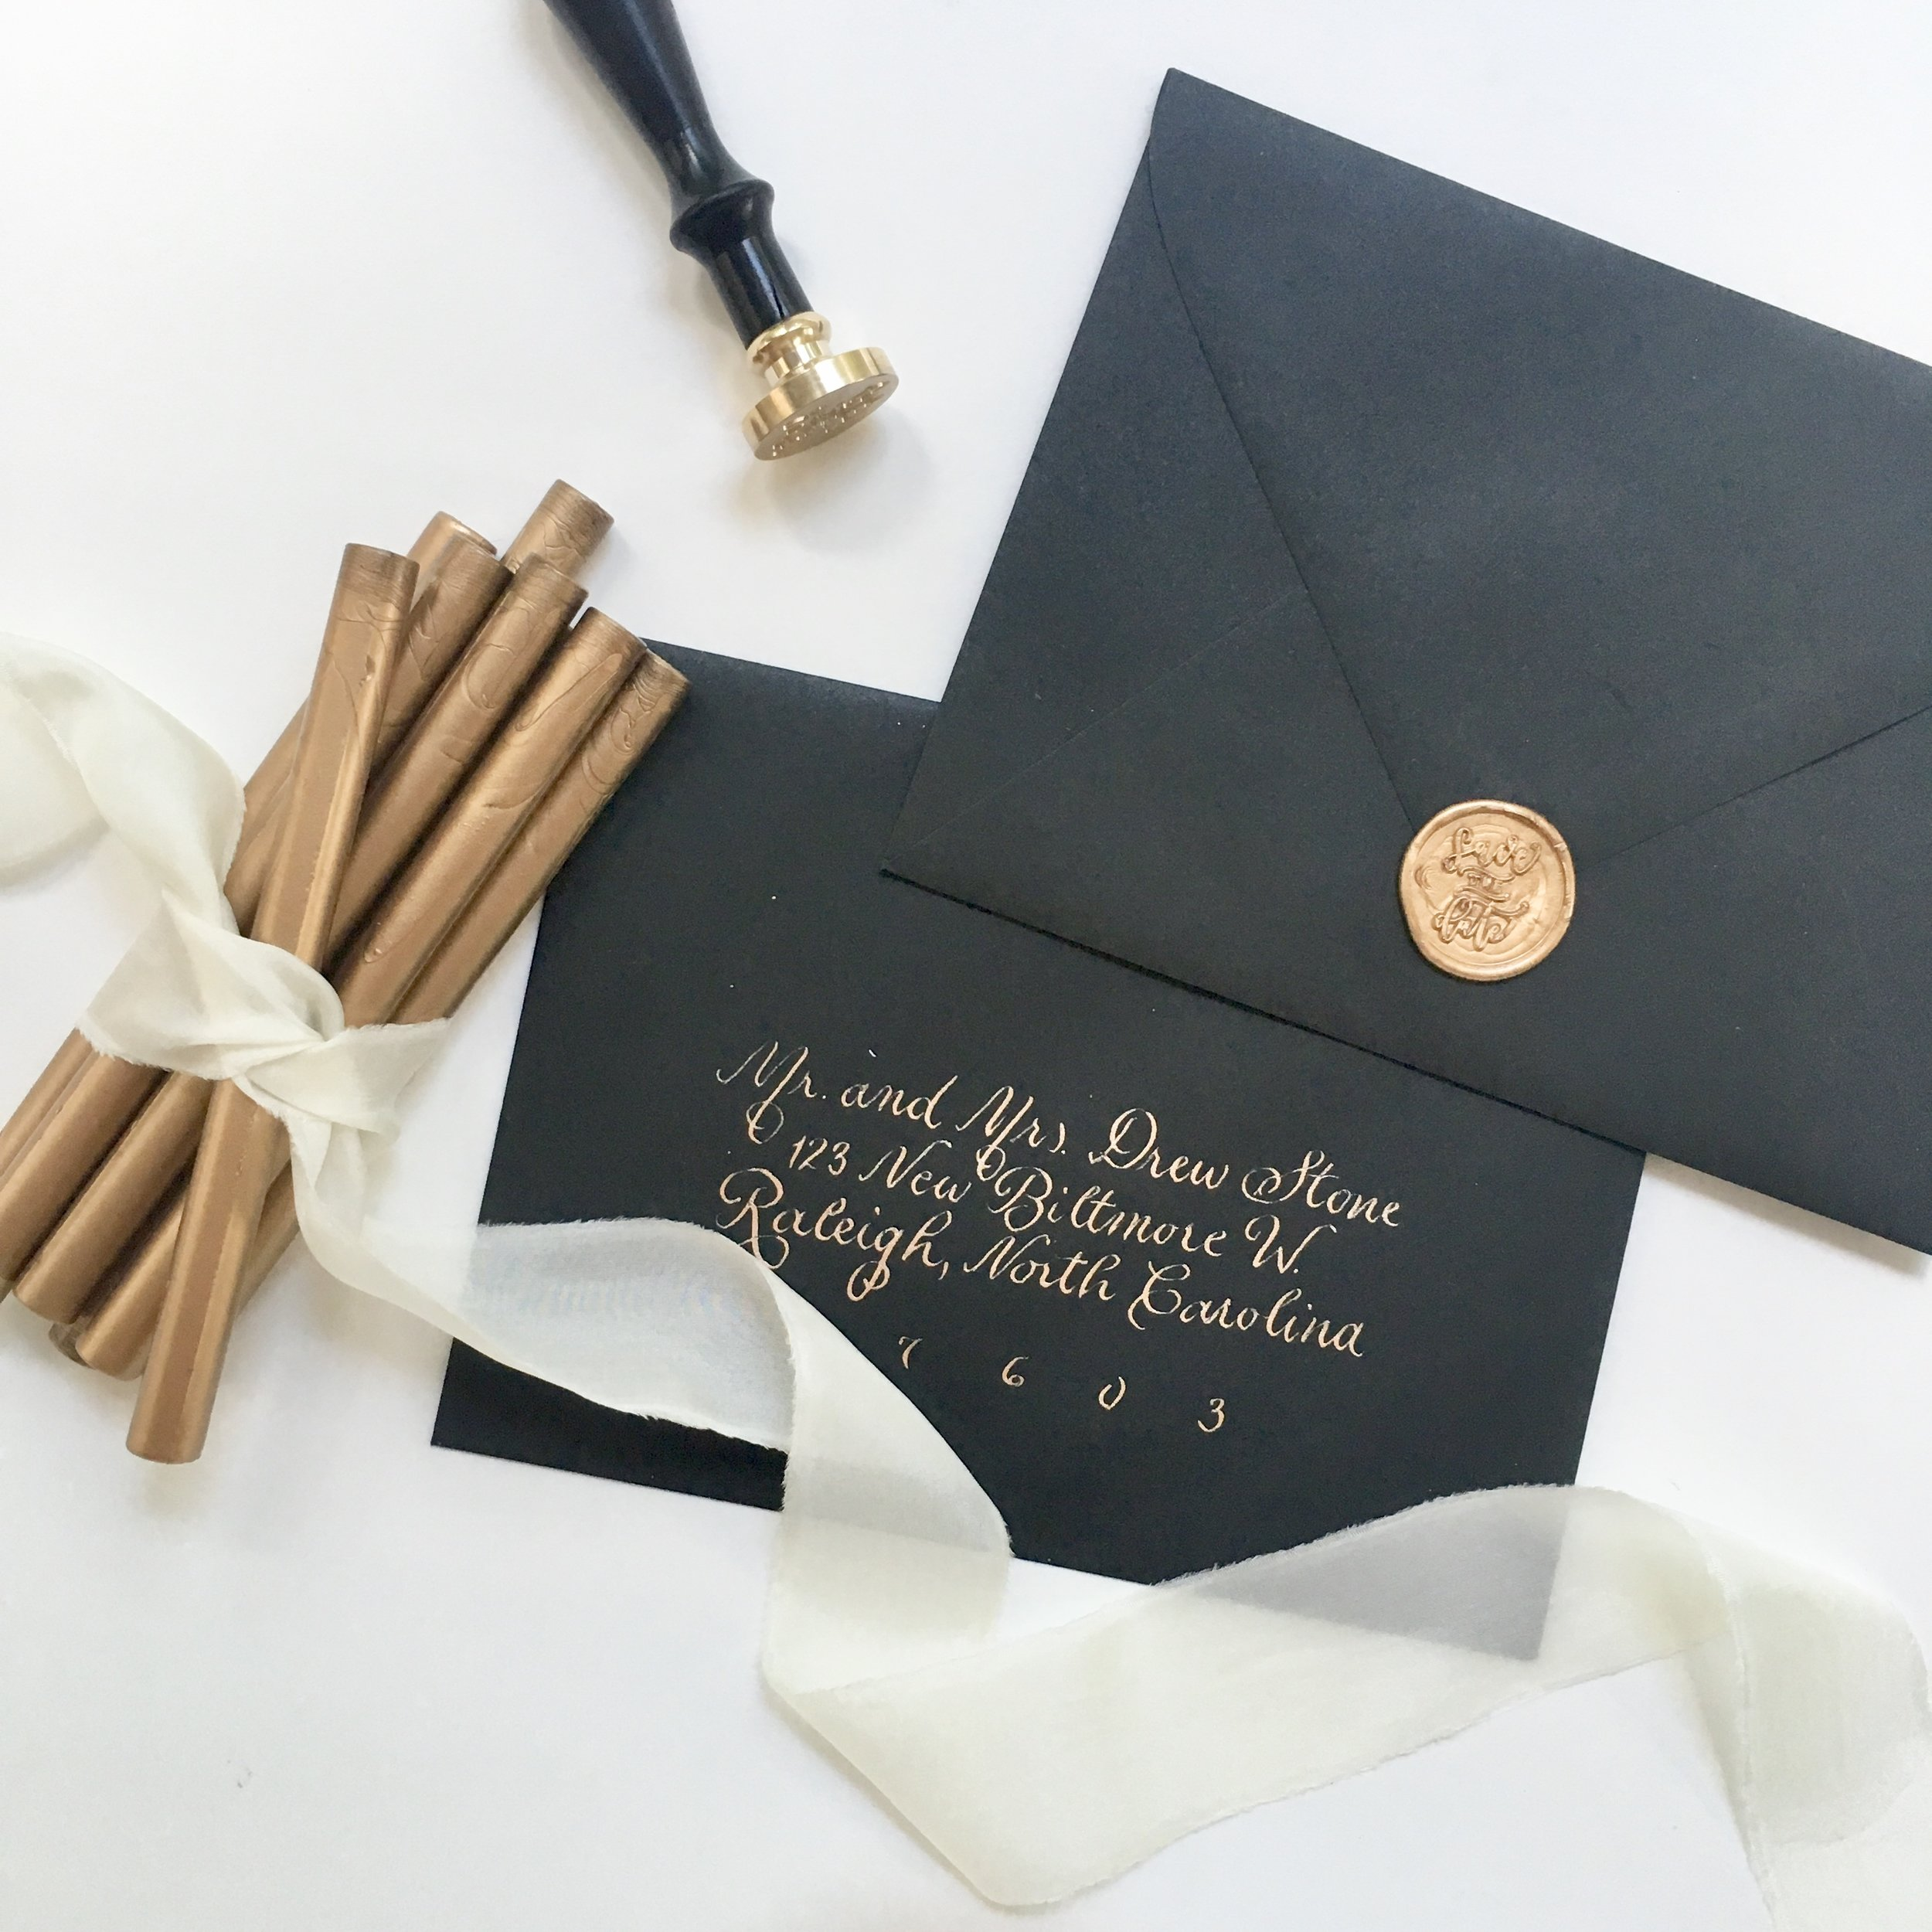 Pictured: Antique Gold Wax Sealing Sticks by Uniqooo and Save the Date Wax Seal Stamp by Uniqooo